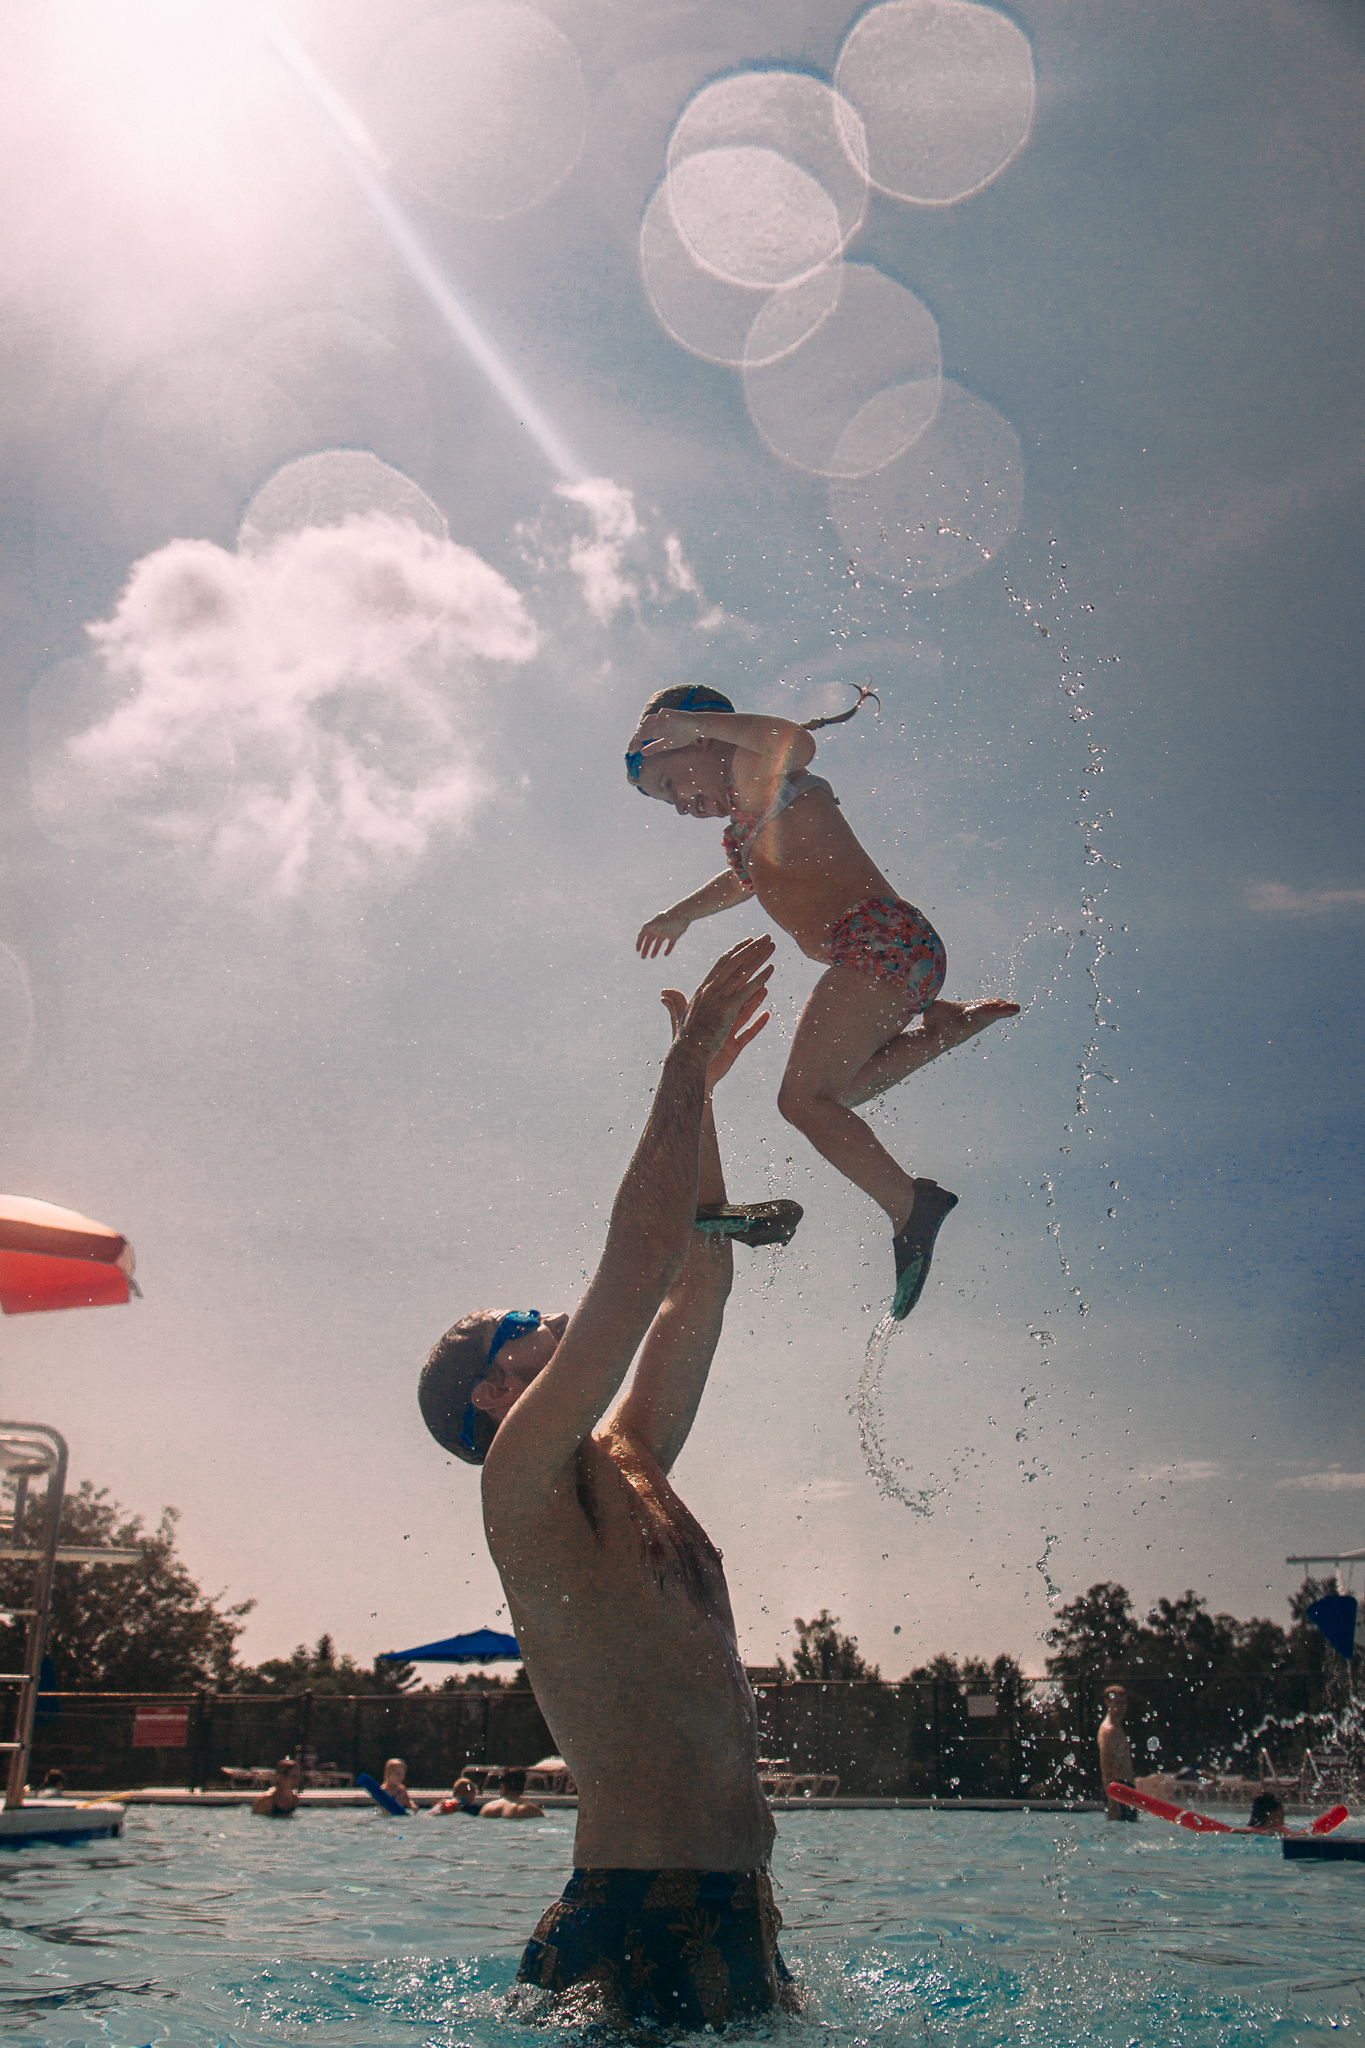 father tossing daughter into air at pool summer Ashburn Loudoun Northern Virginia family lifestyle documentary childhood Marti Austin Photography